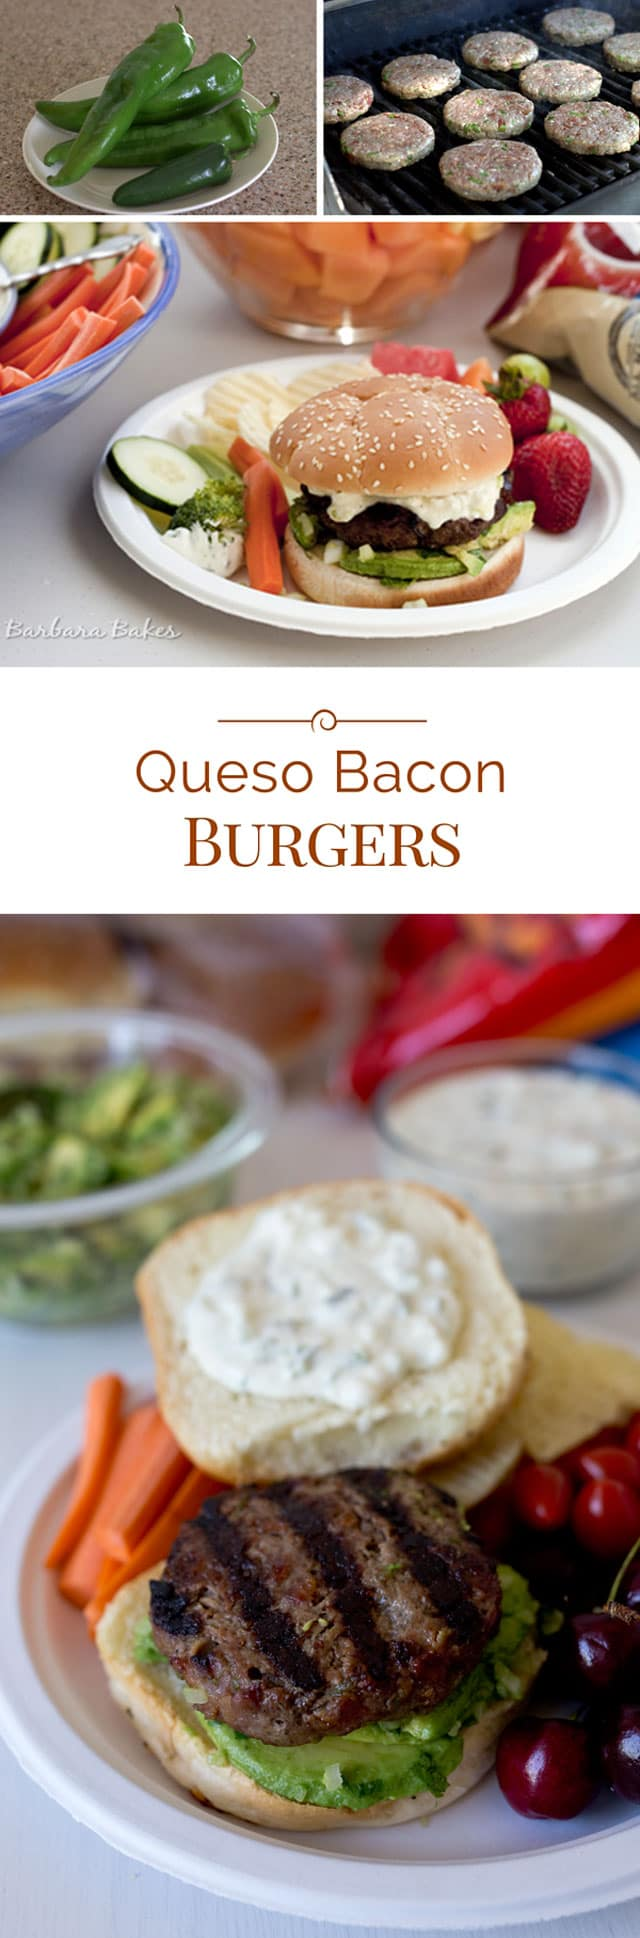 Burgers made with bacon and roasted peppers, dripping with a queso cheese sauce and loaded with an avocado salsa. A great way to kick it up a notch.